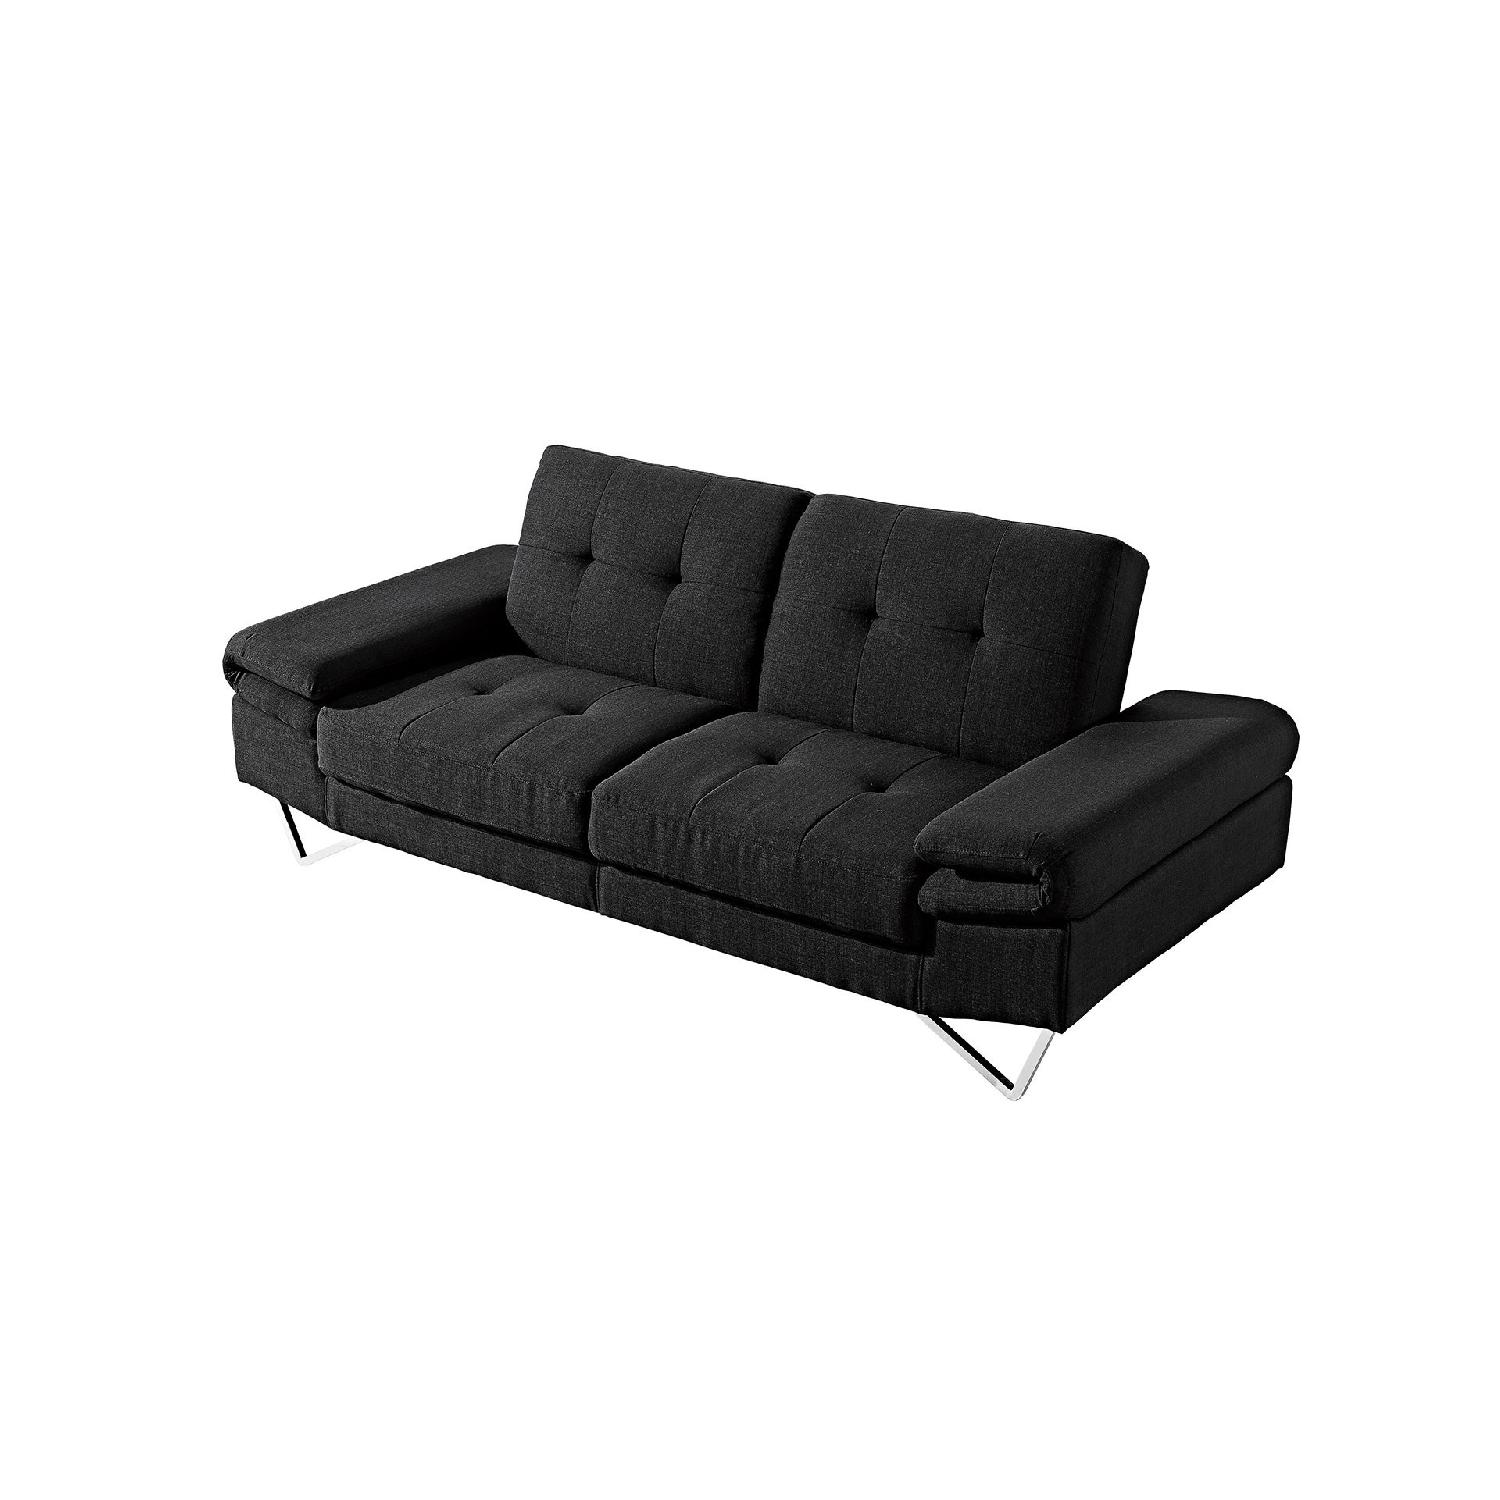 Modern Sofa Bed in Black Fabric w/ Stainless Steel Legs